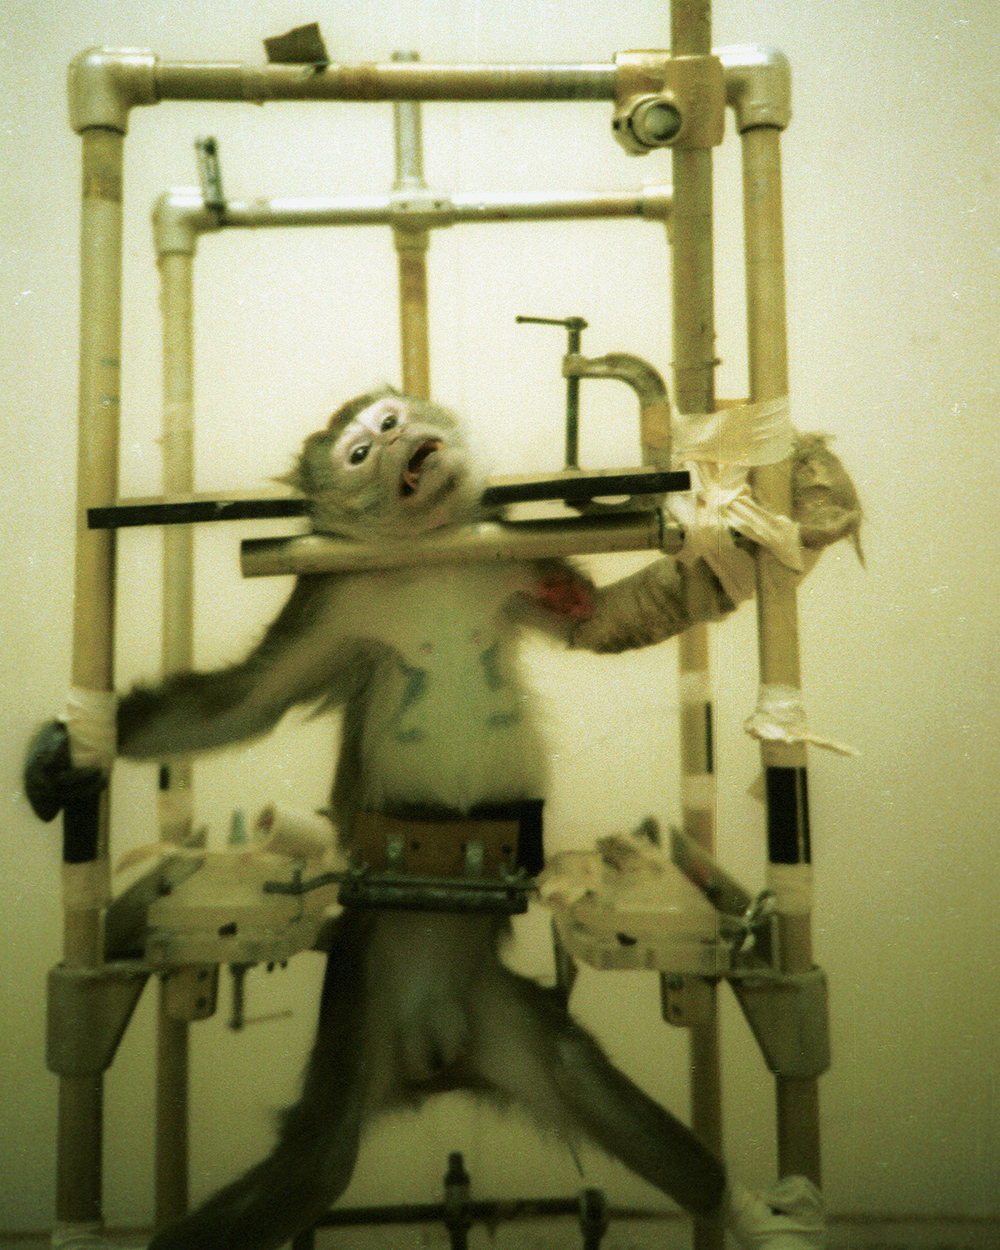 The Silver Spring Monkeys: The Case that launched PETA in 1981 (credit: PETA)